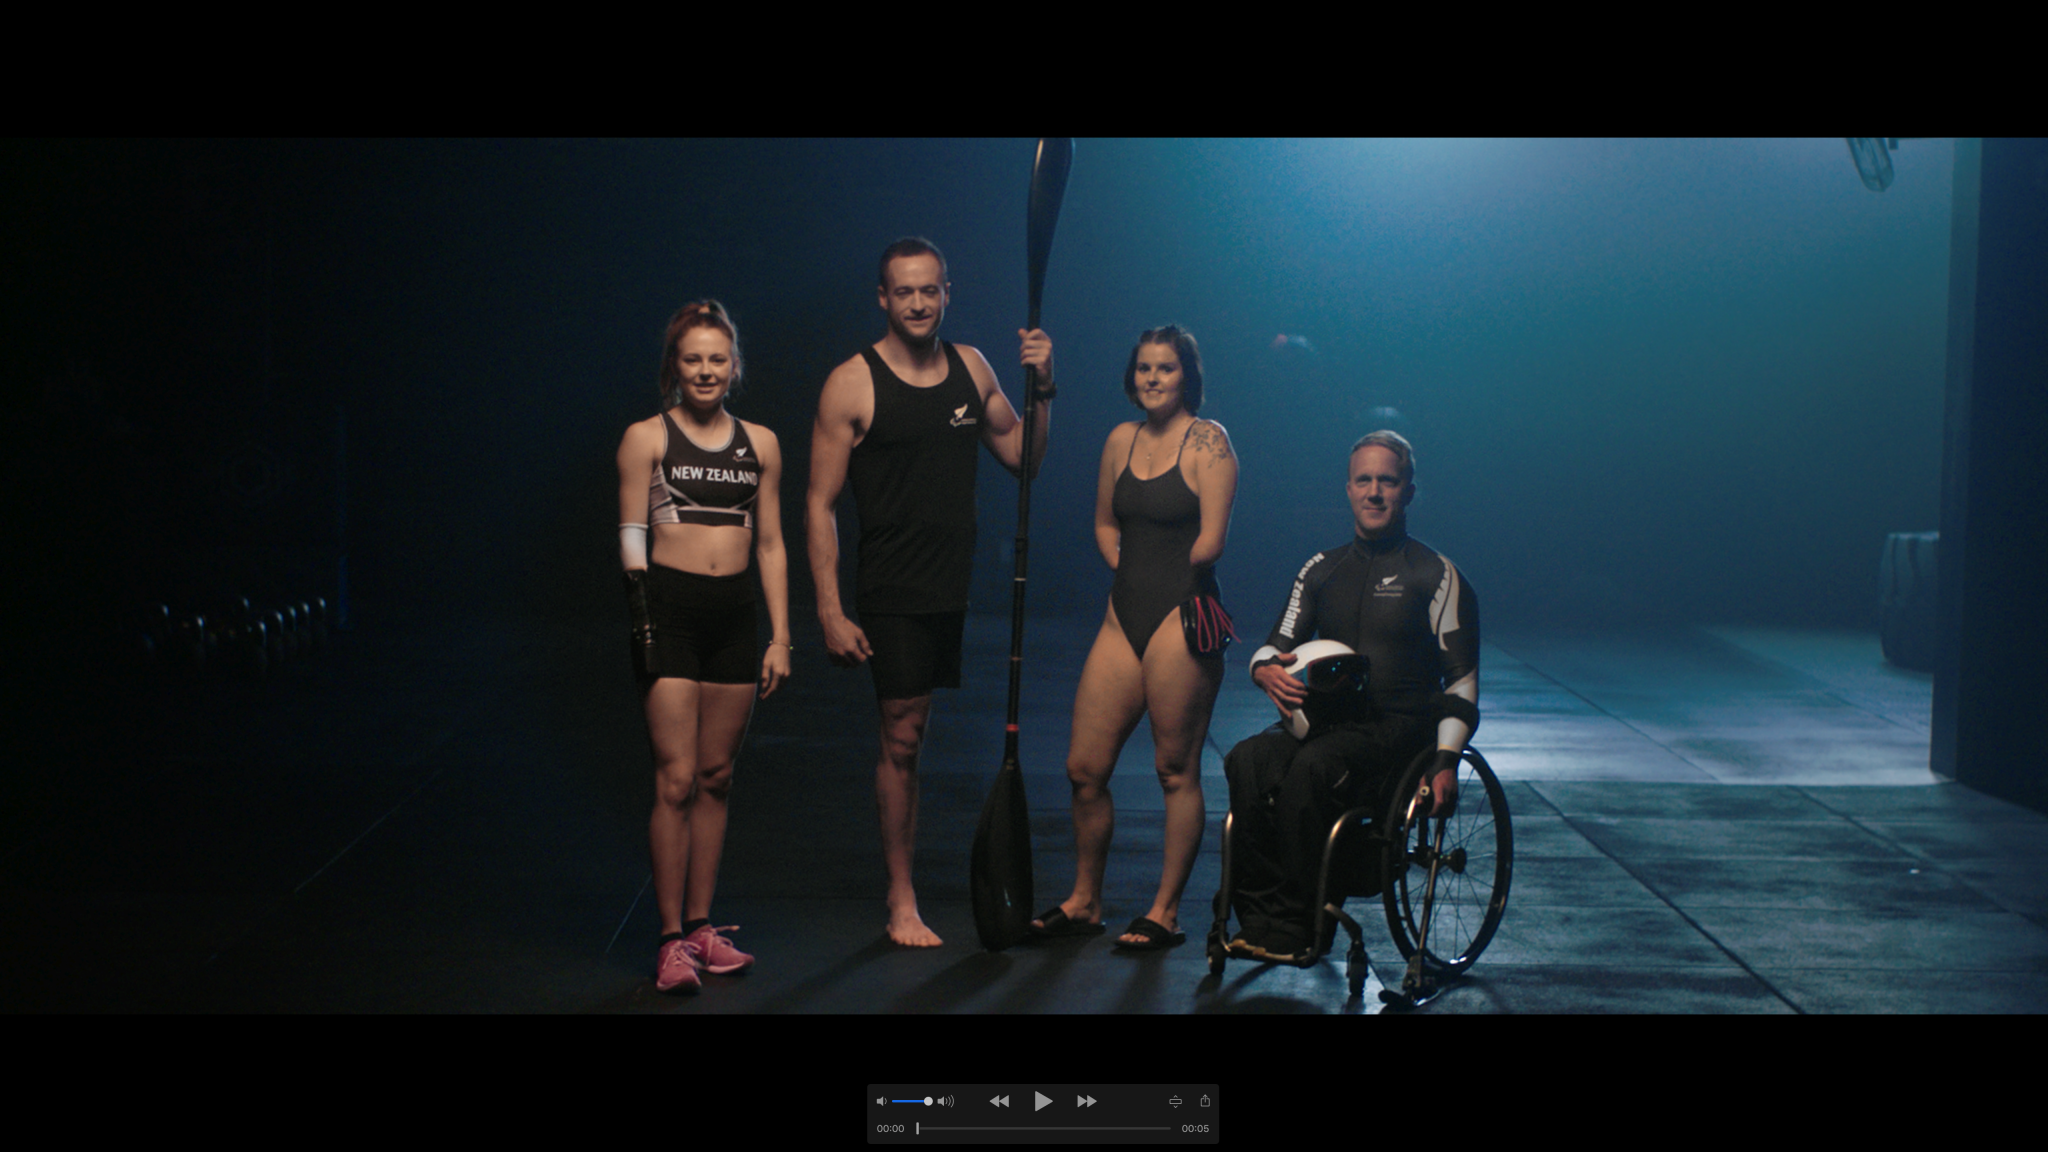 Paralympics New Zealand look to sell filmed advert to companies